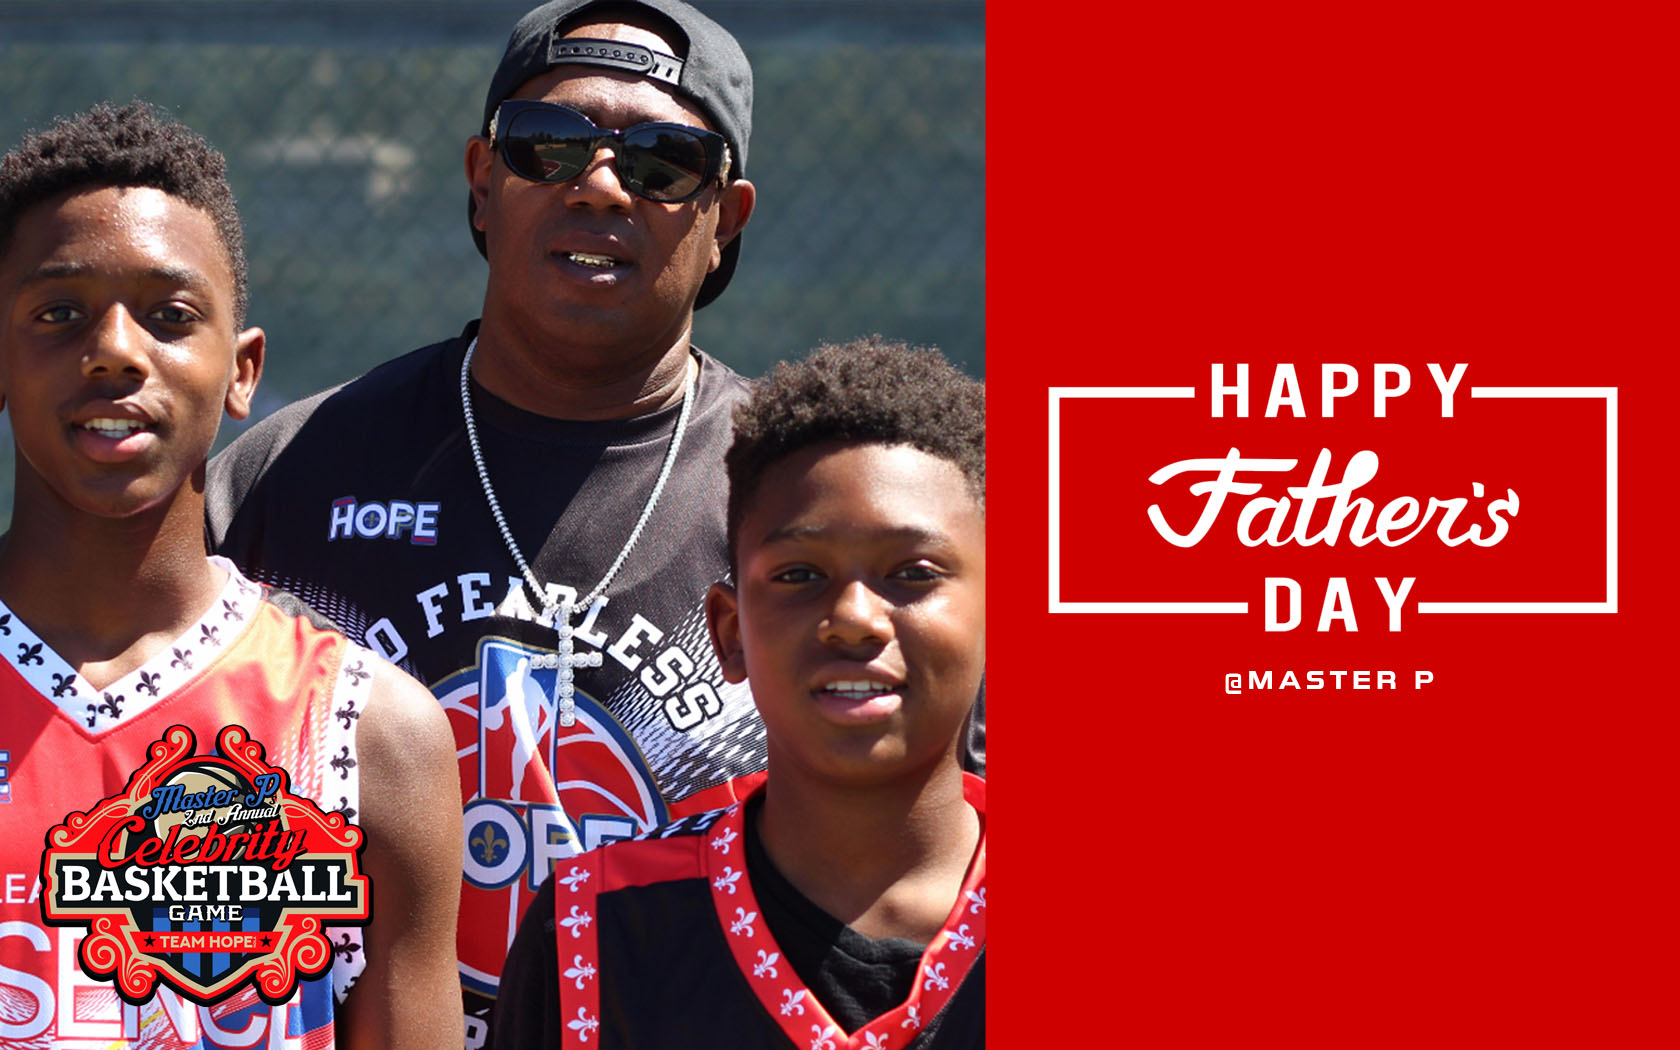 MASTER P SAYS HAPPY FATHER'S DAY THIS IS MY LETTER TO MY DAD